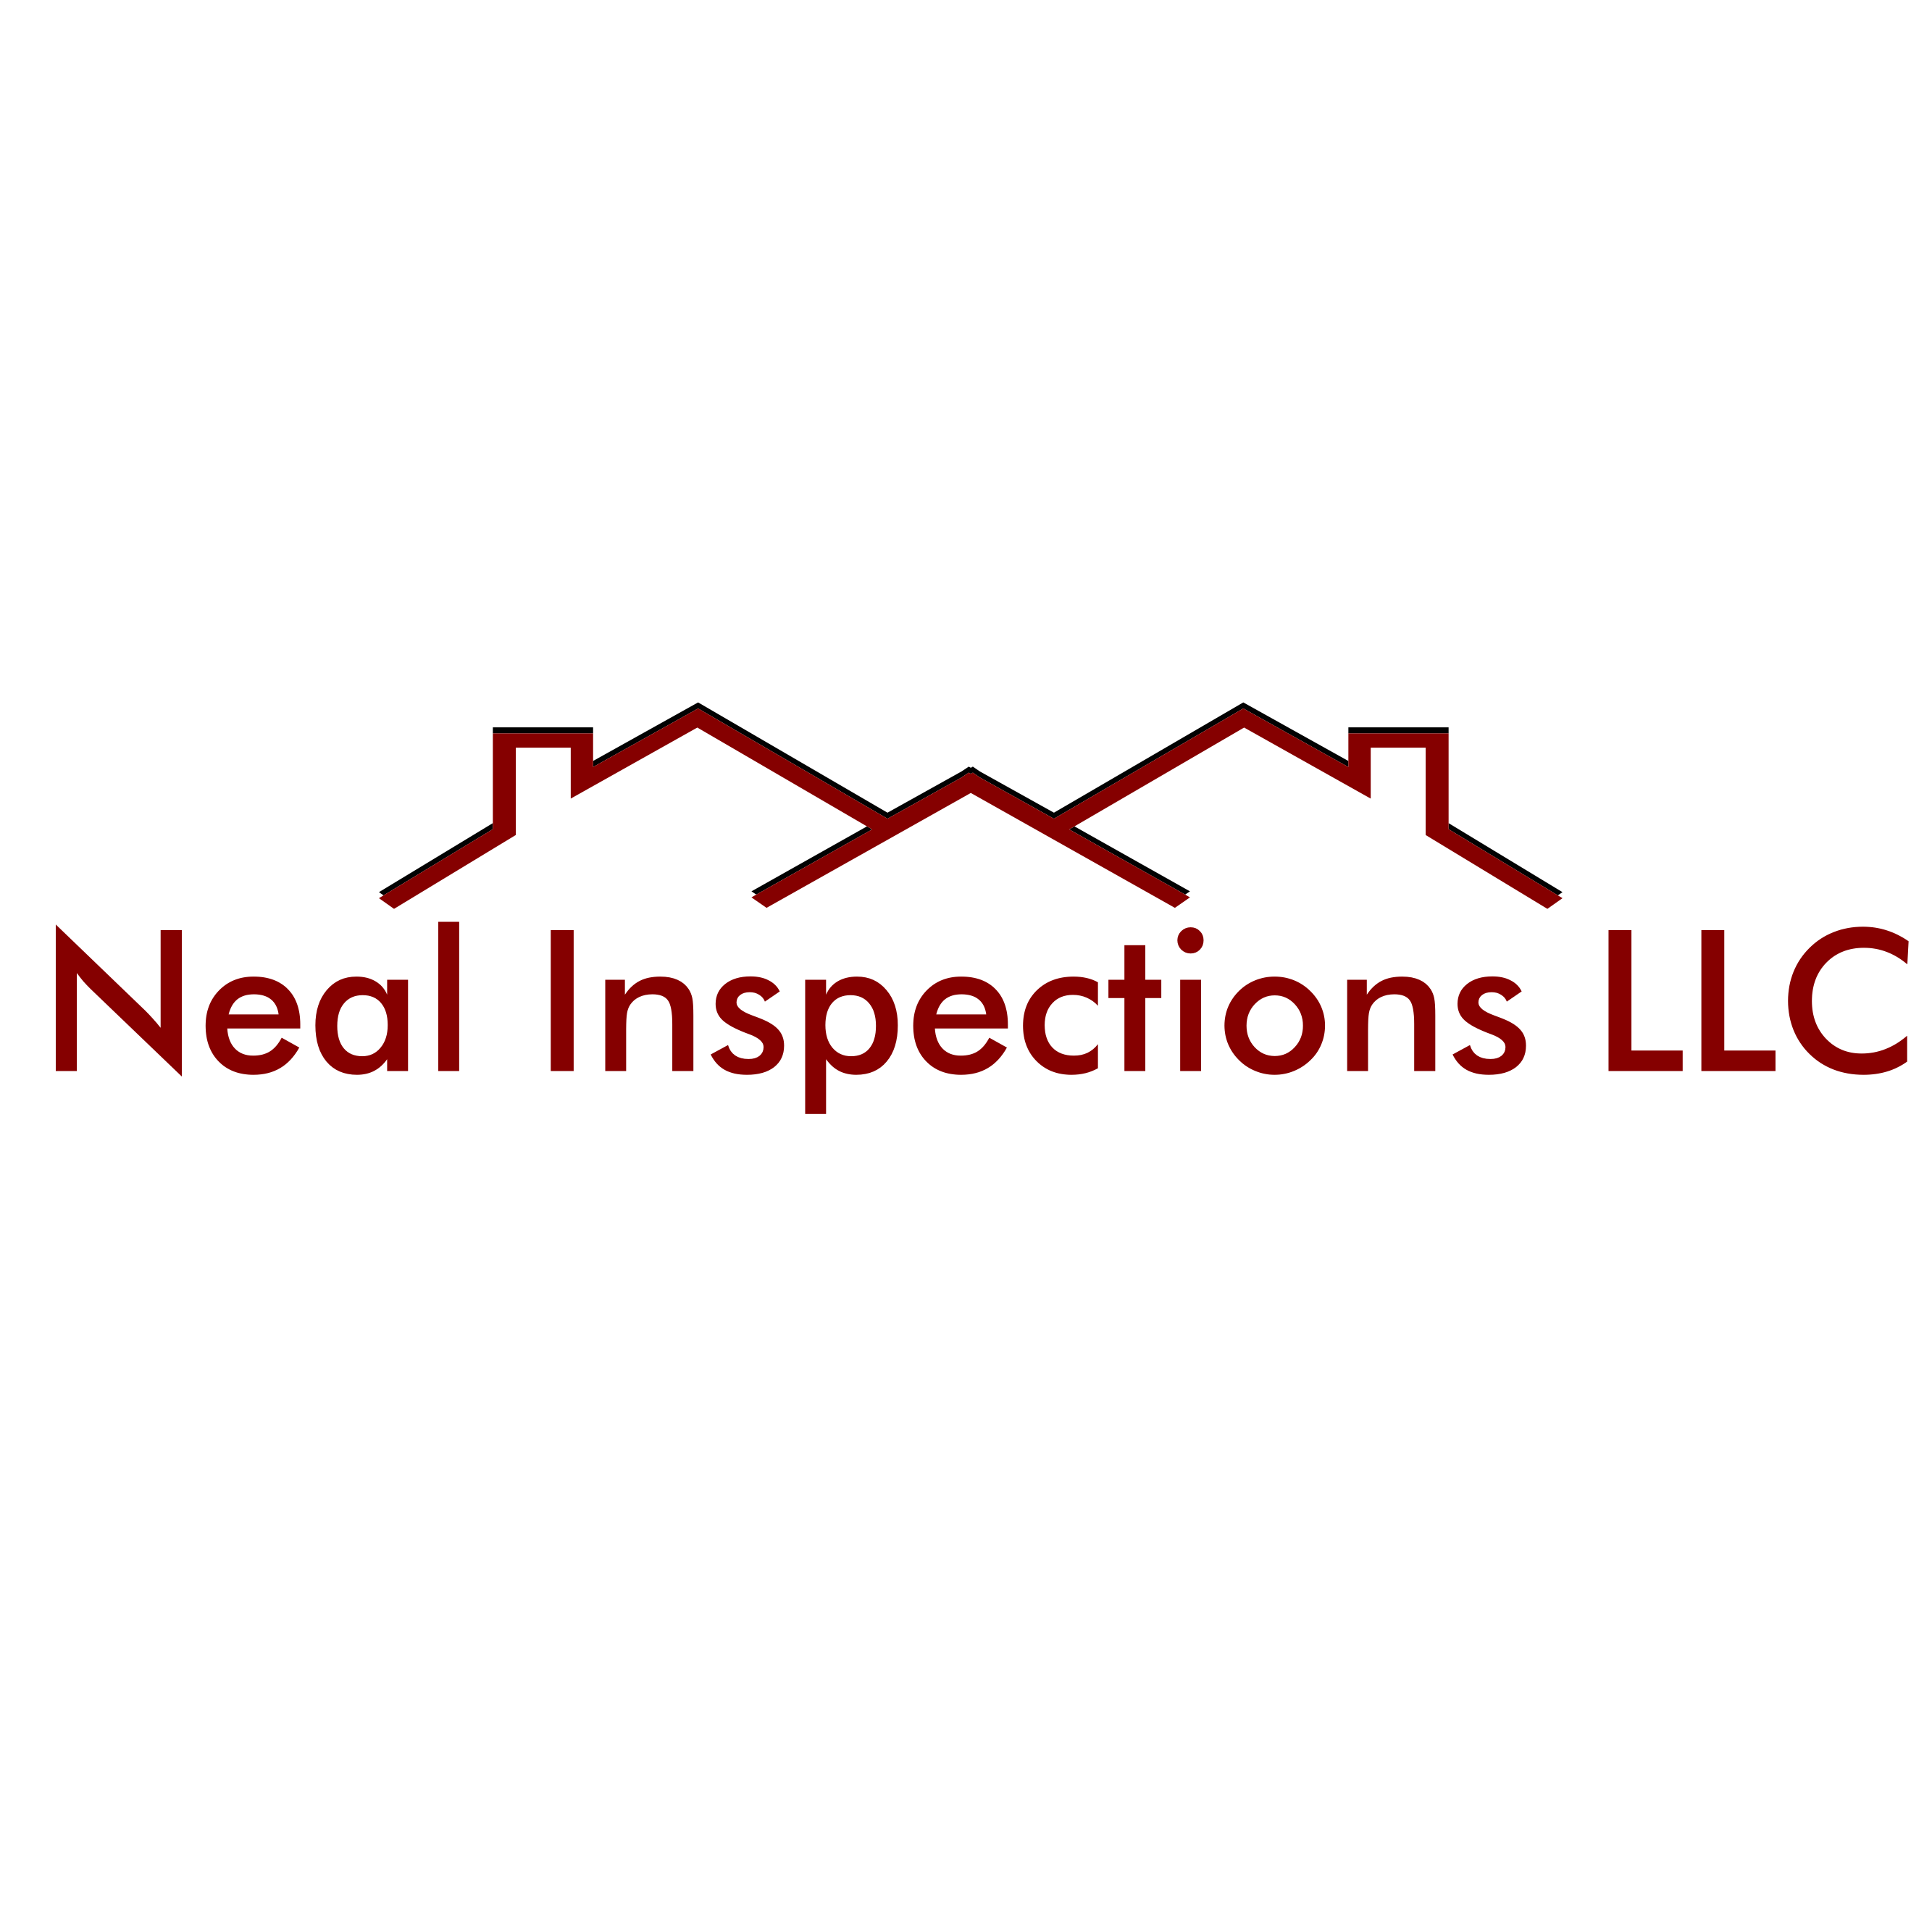 Neal Inspections LLC